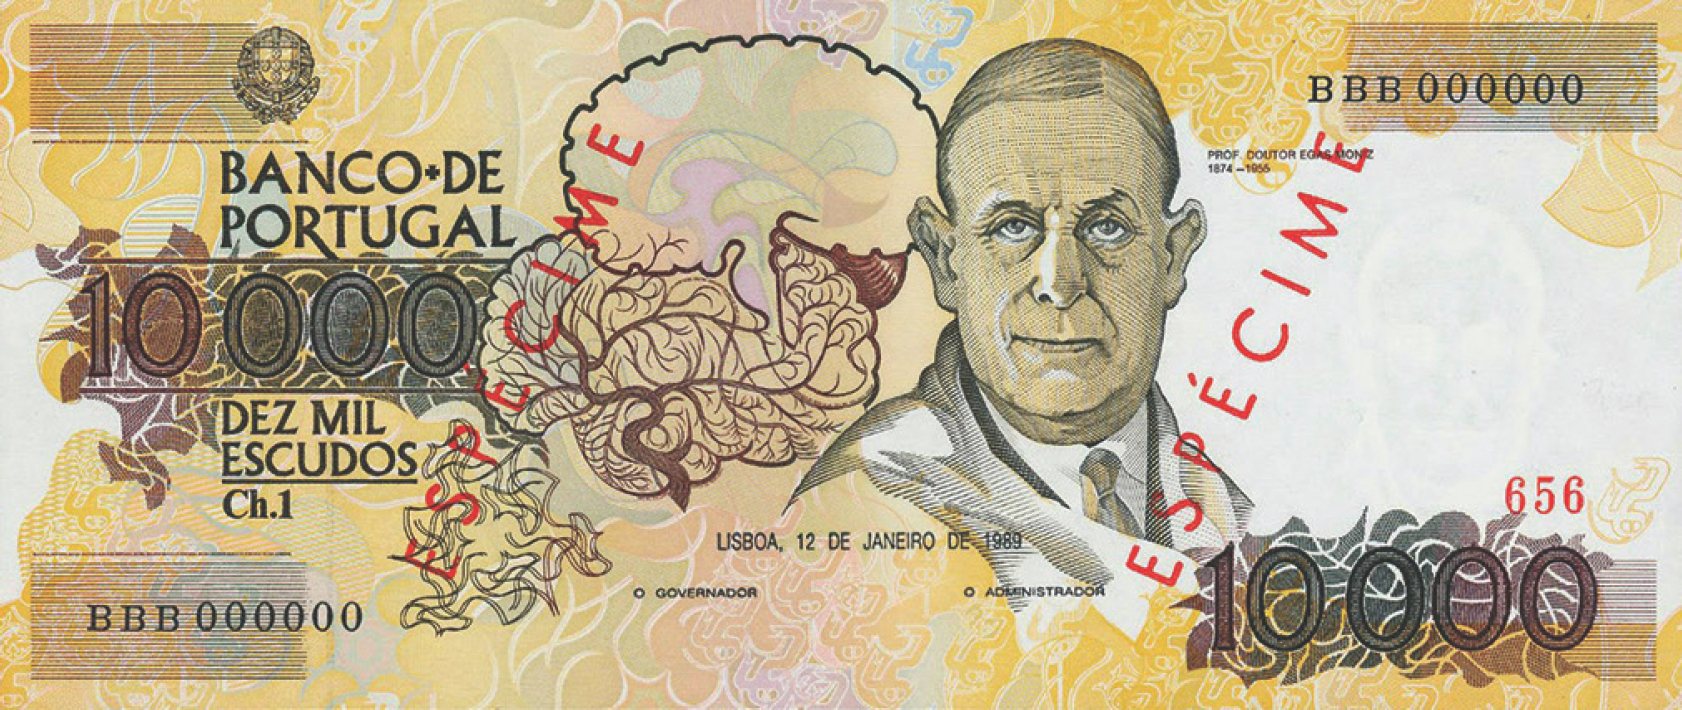 Figure 28: Portuguese neurologist Egas Moniz featured on a 10,000 Escudos currency note of 1989 of Bank of Portugal.